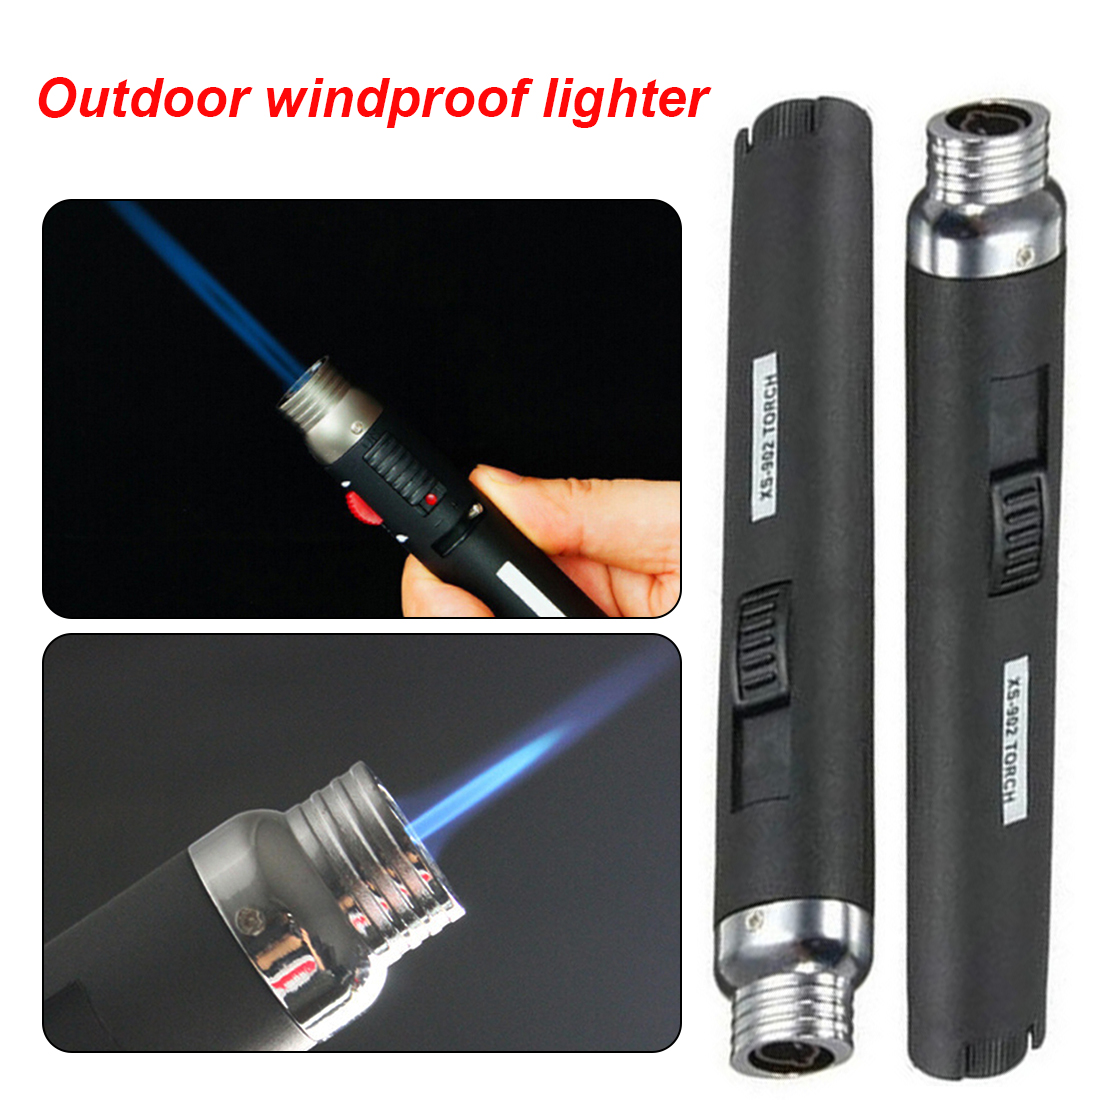 1pcs Portable Outdoor Jet Flame Butane Gas Refill Lighter Welding Torch Pen P0.11